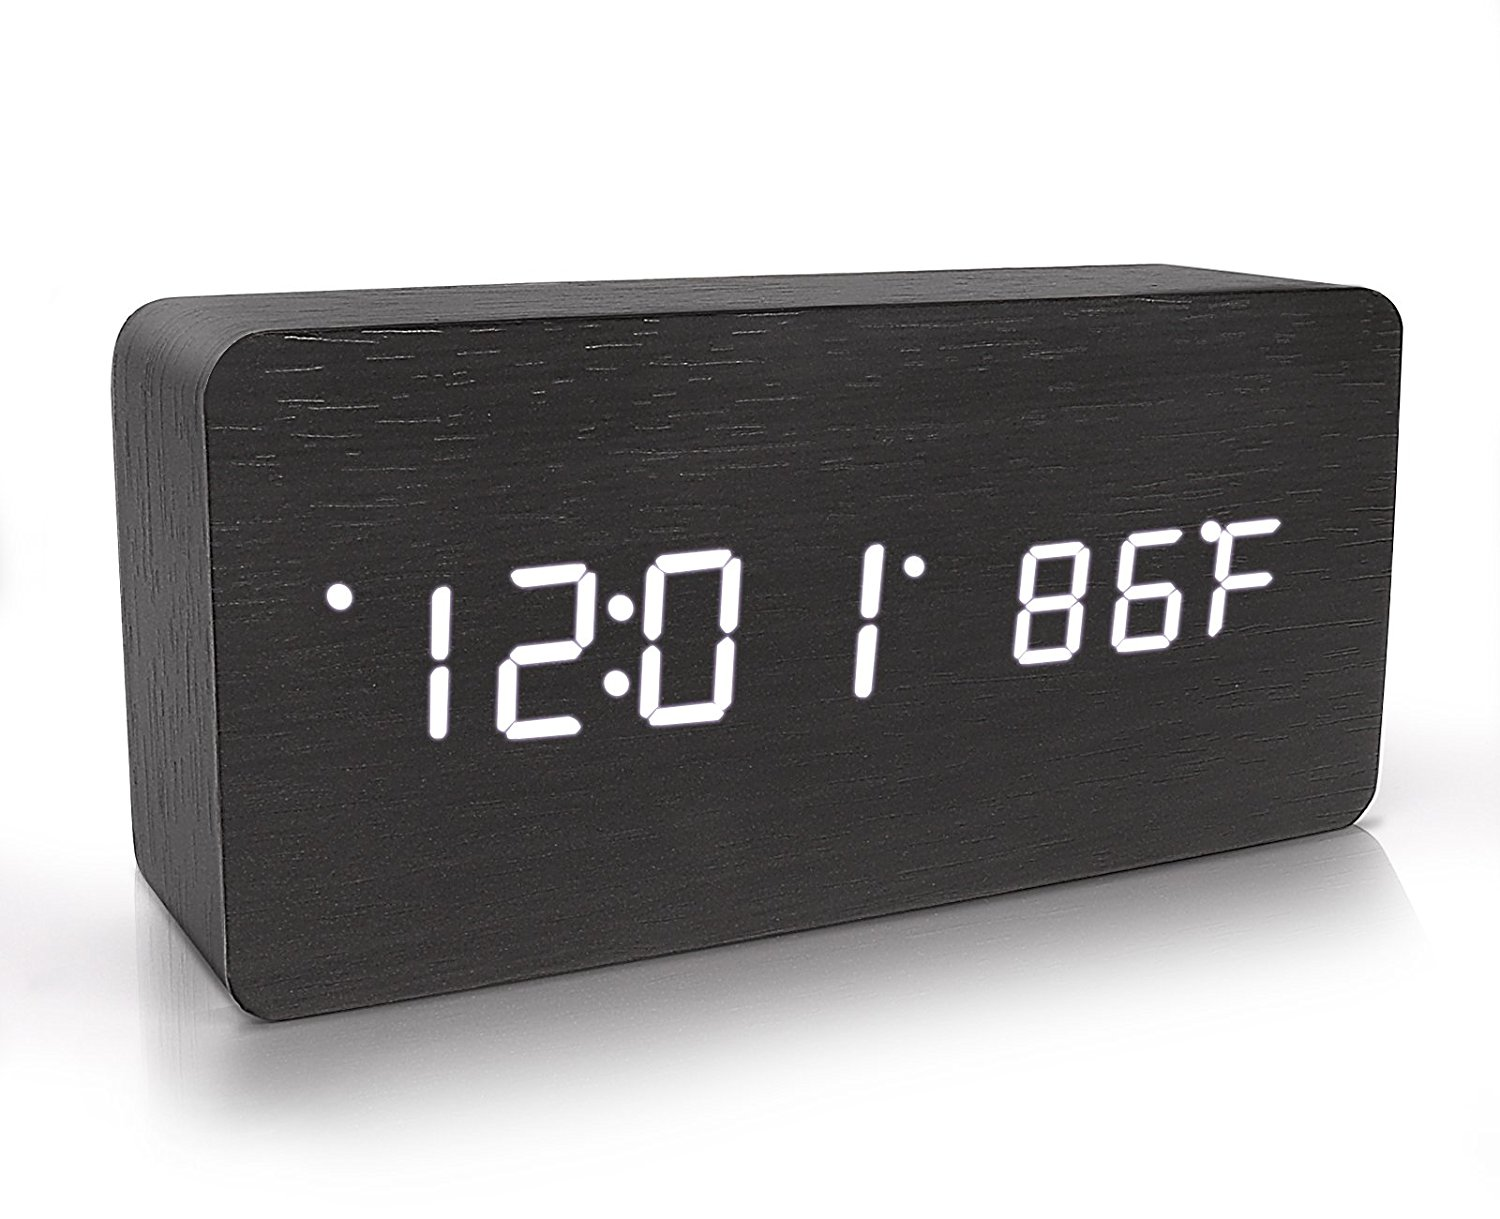 Warmhoming Wooden Digital Alarm Clock, Acoustic Control Clock With Time Temperature And Voice Control, Black